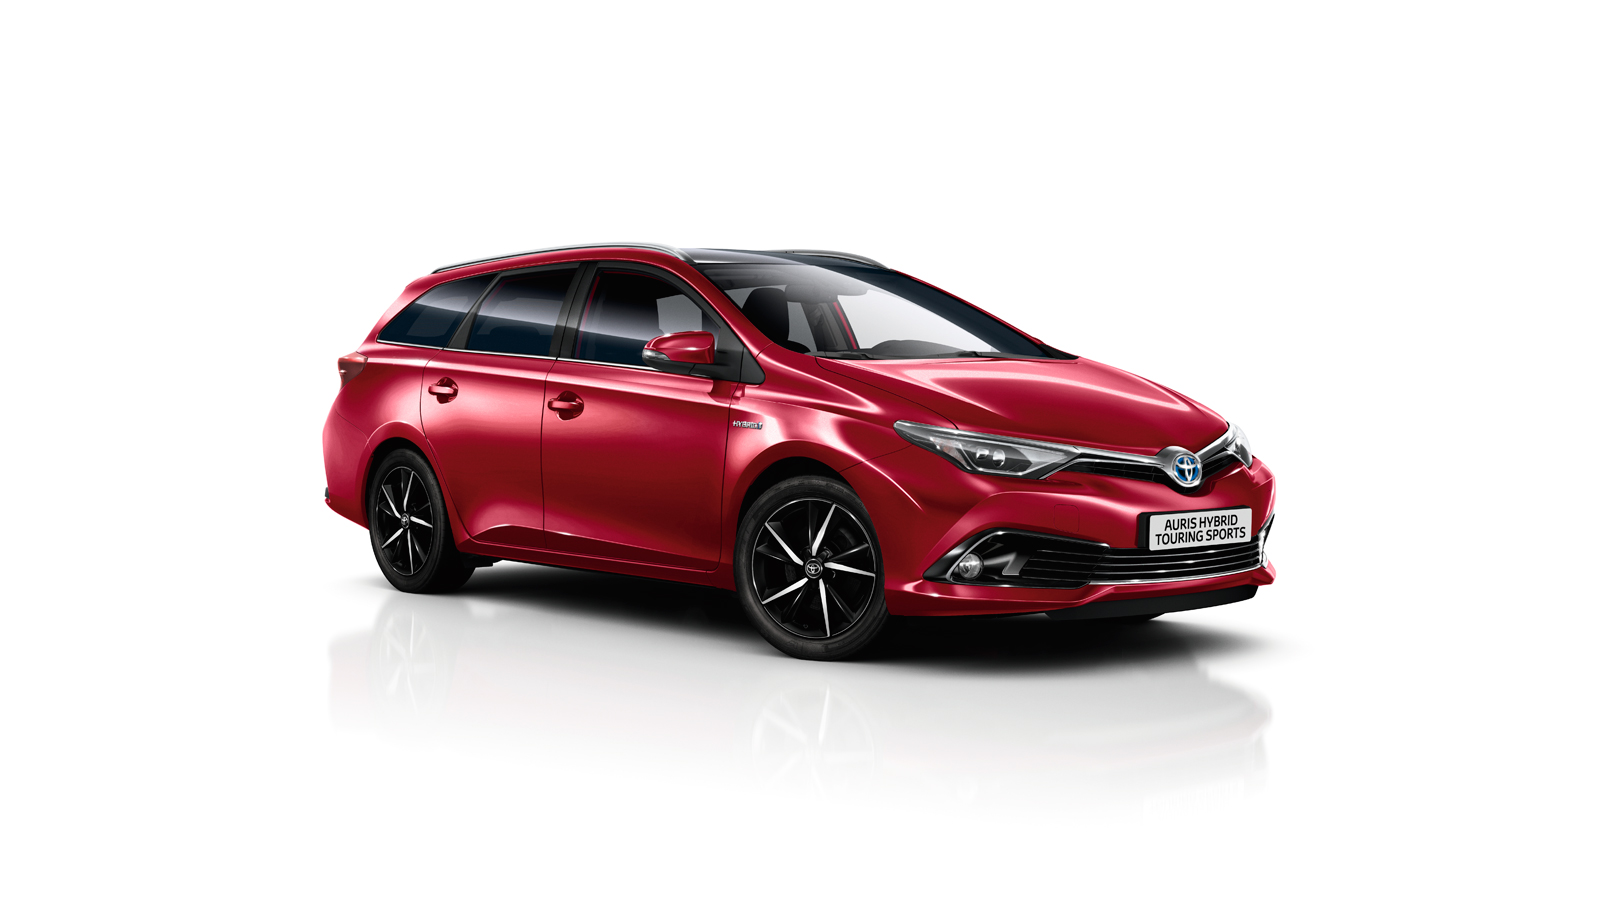 toyota-auris-touring-sports-2017-exterior-tme-001-a-full.indd